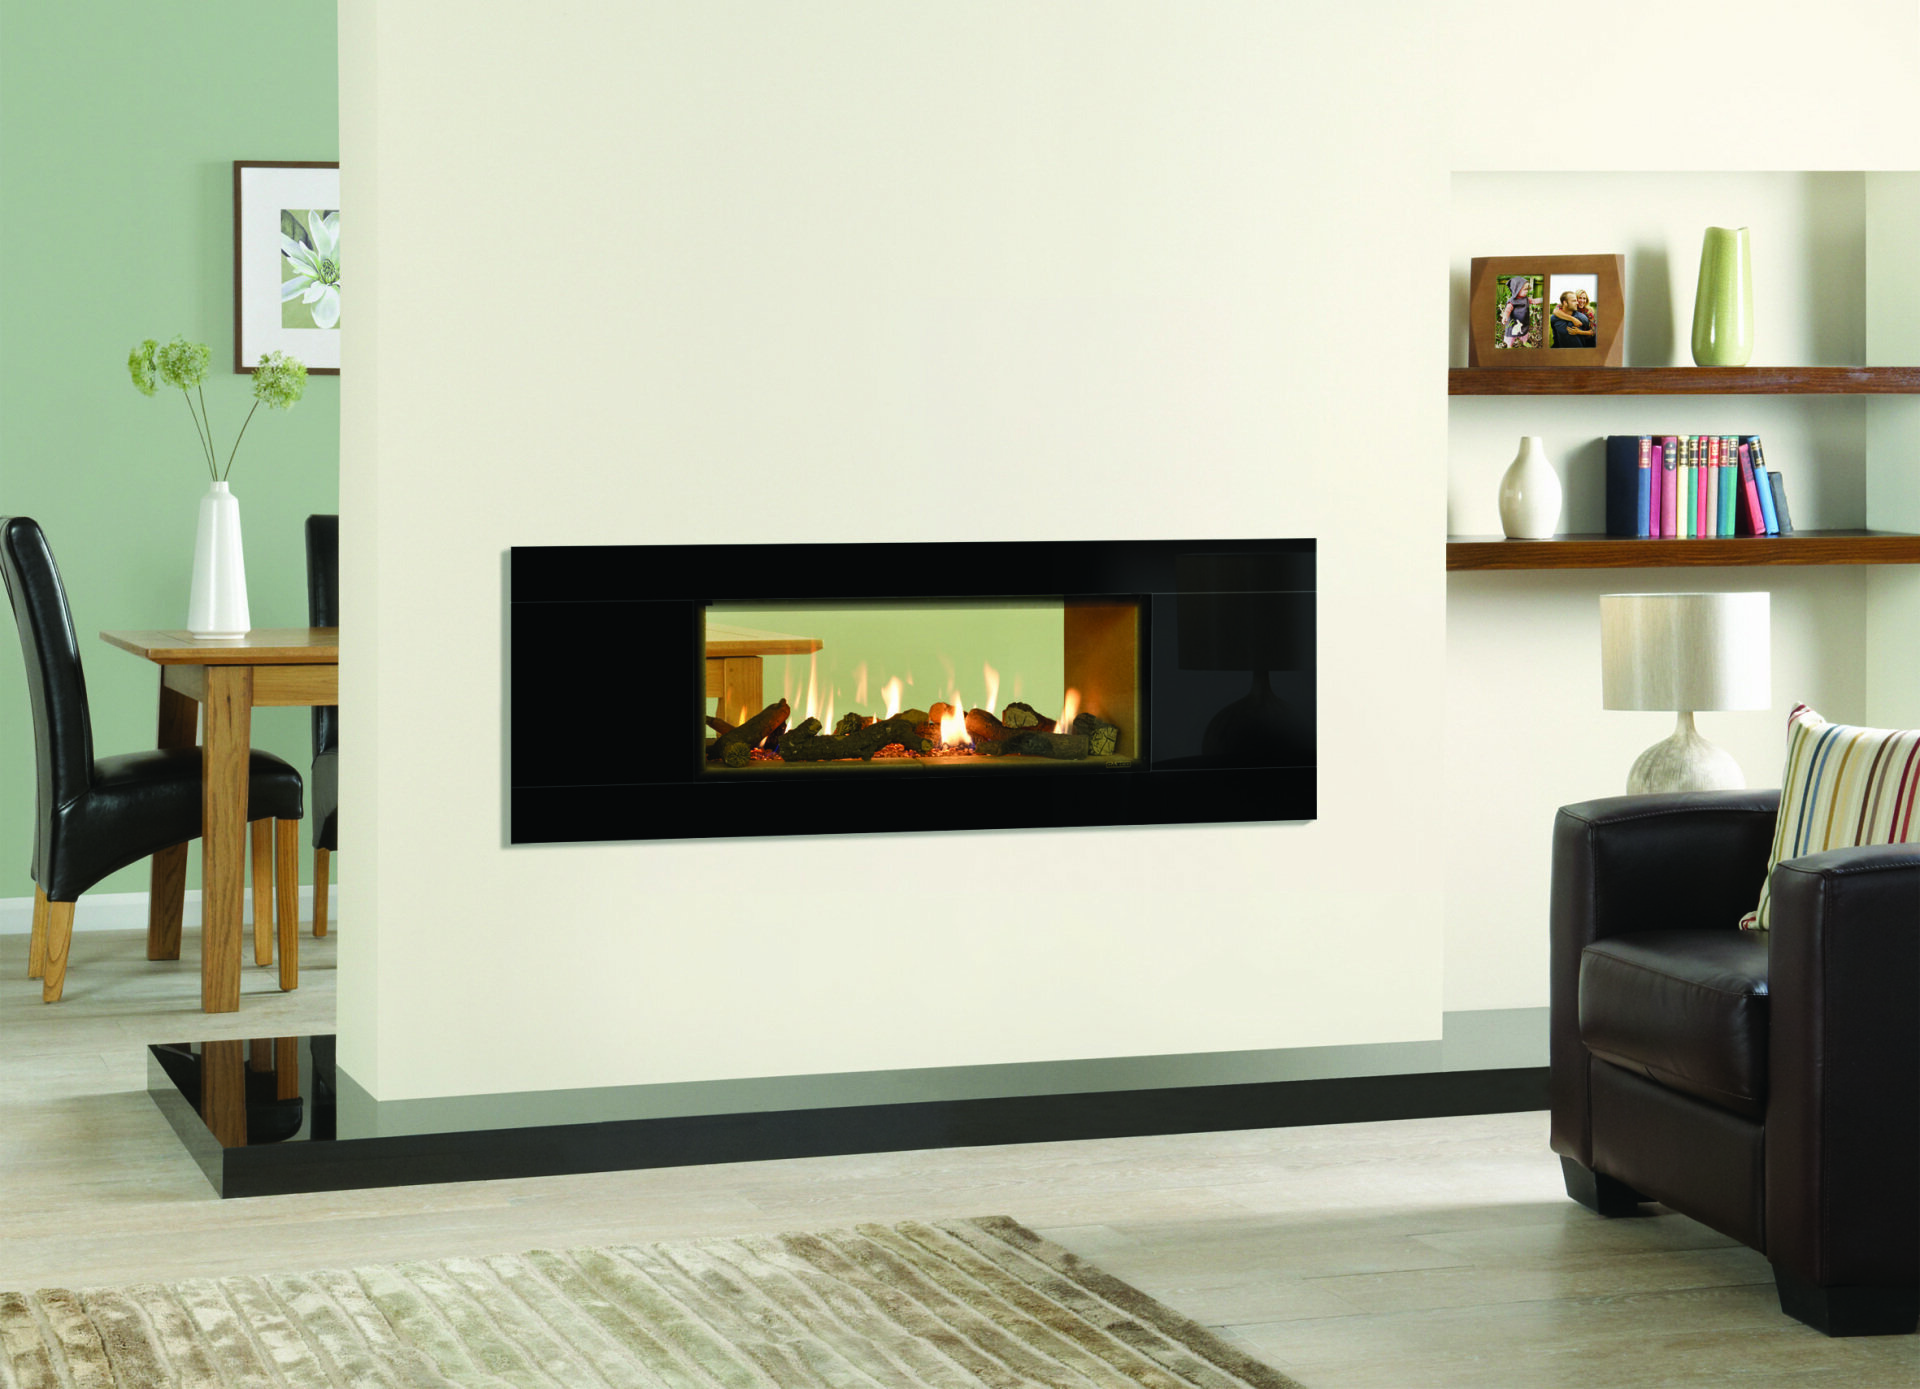 Studio Inset Glass Fronted Range - Gas